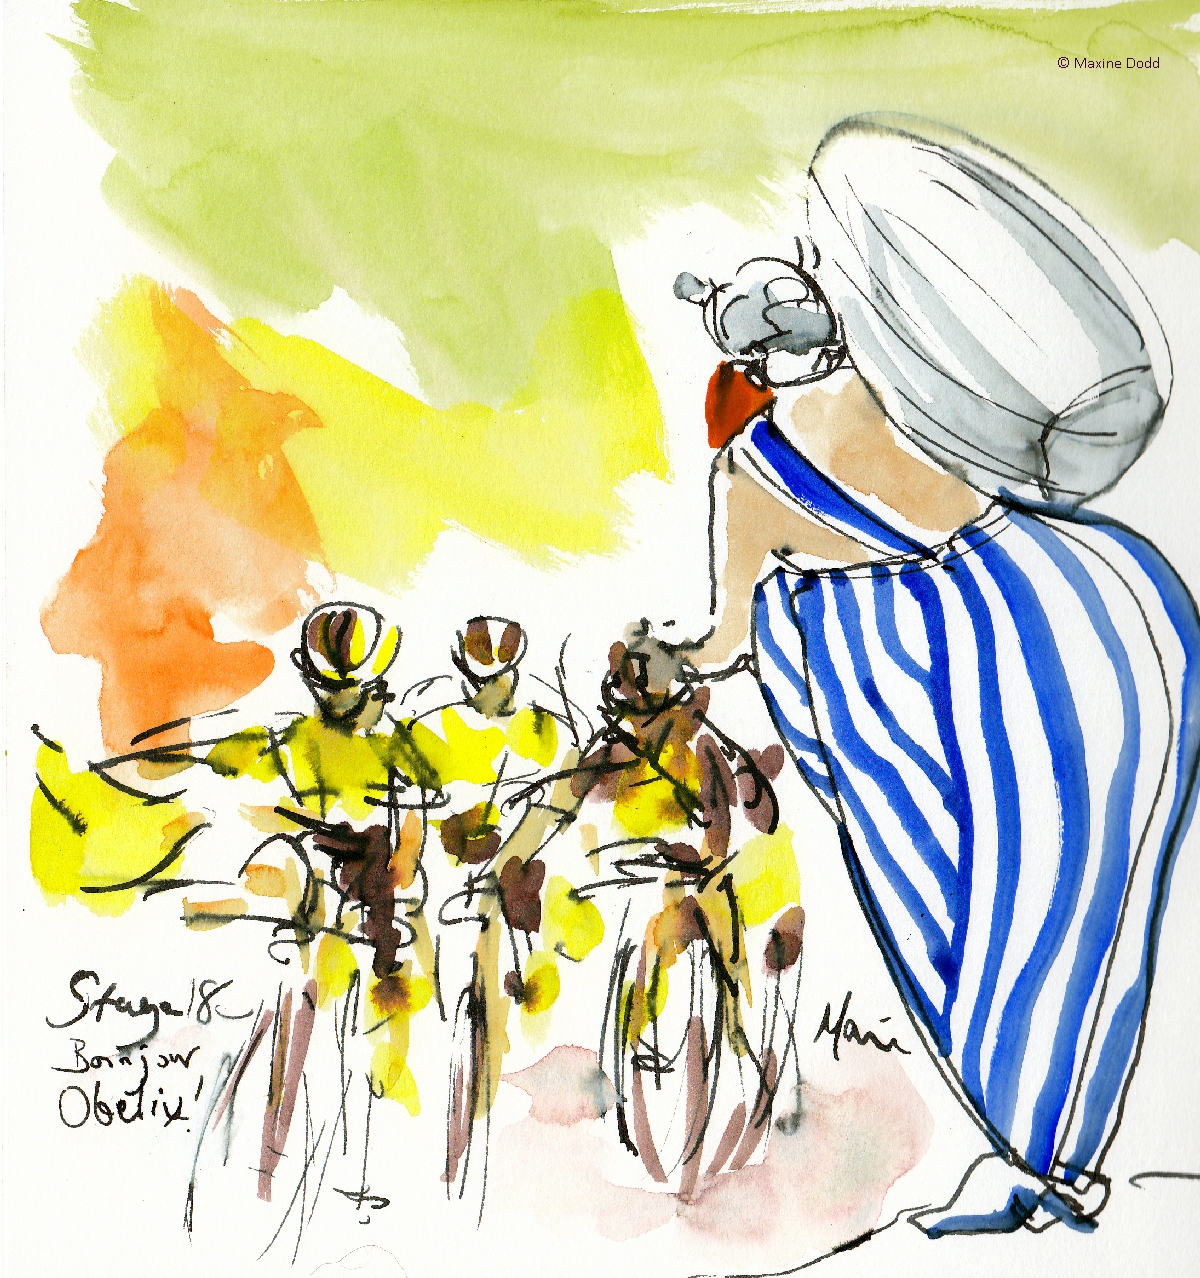 Bonjour Obelix! Watercolour, pen and ink by Maxine Dodd